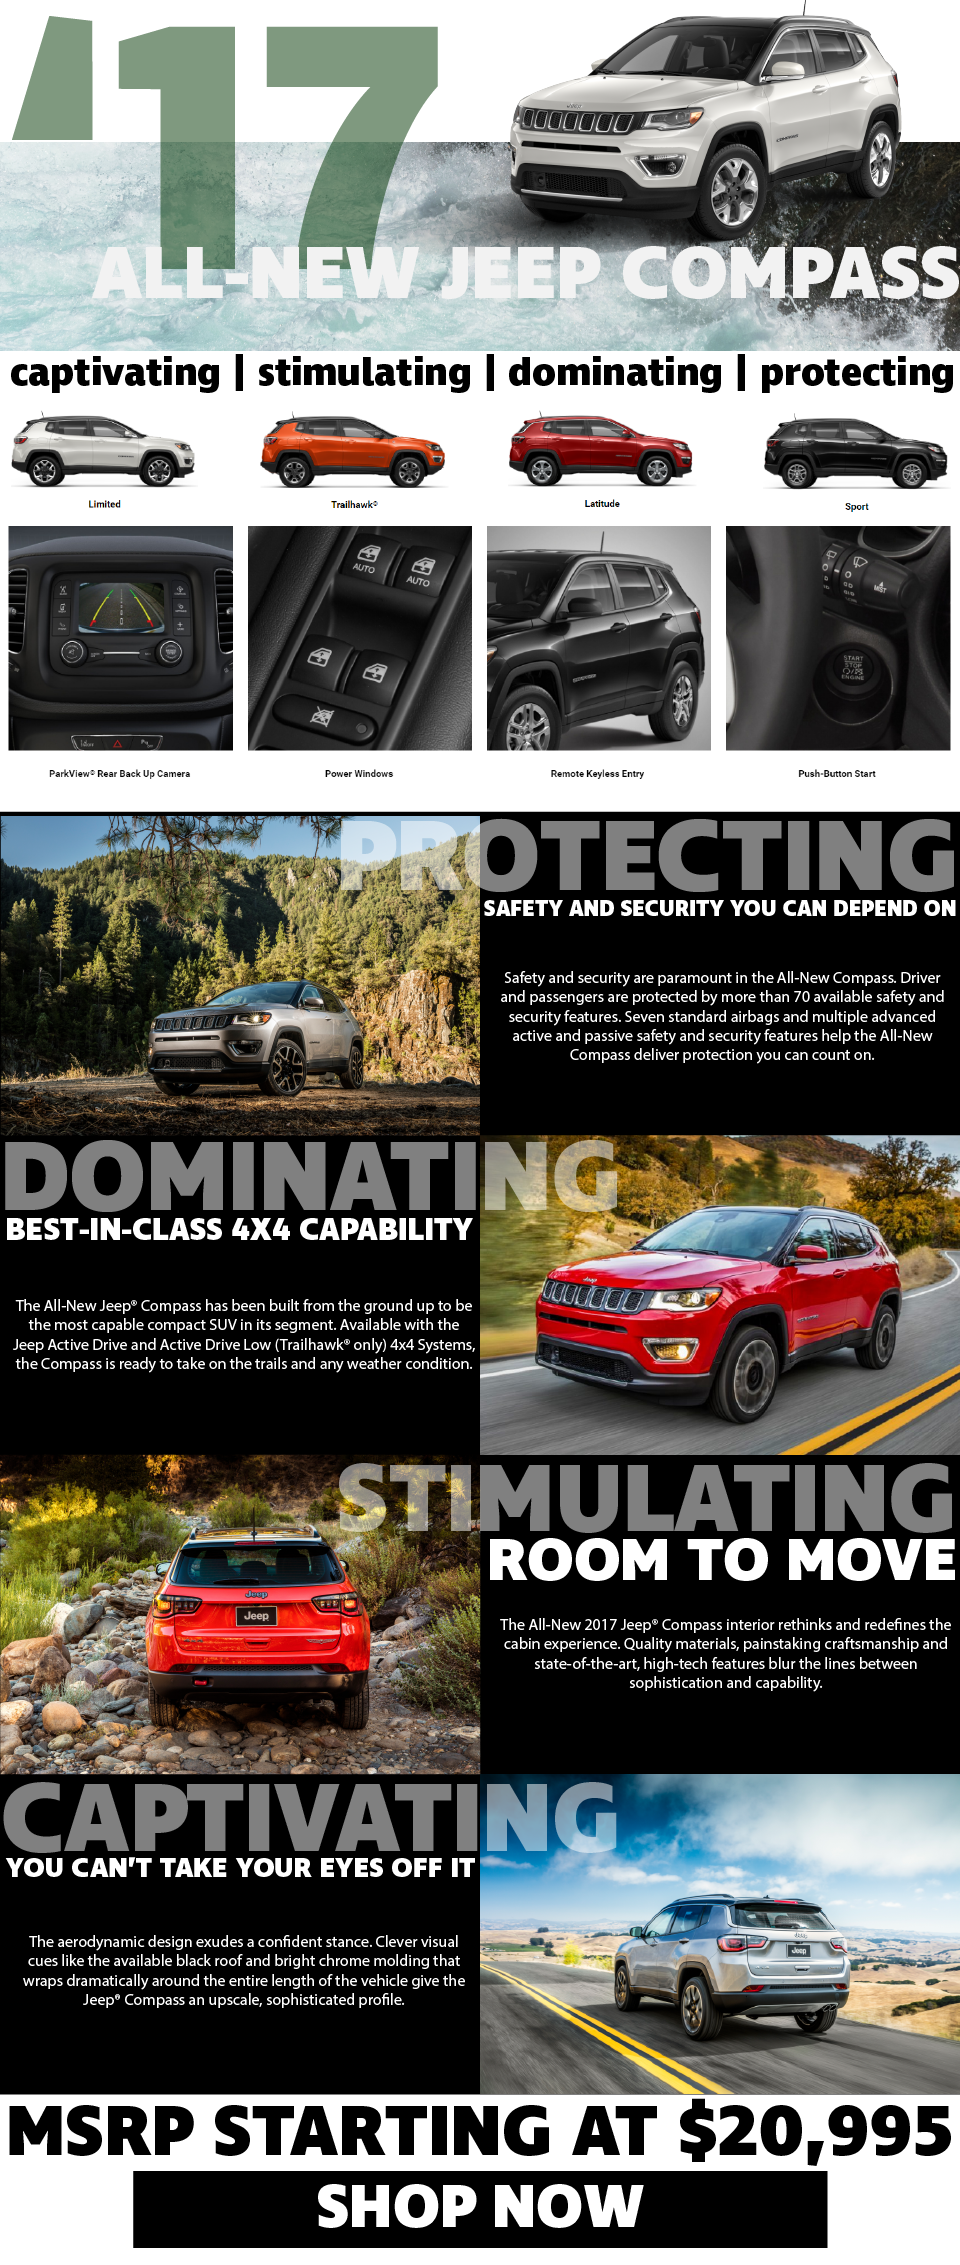 Foster Motors is introducing the new Jeep Compass to Middlebury, VT!